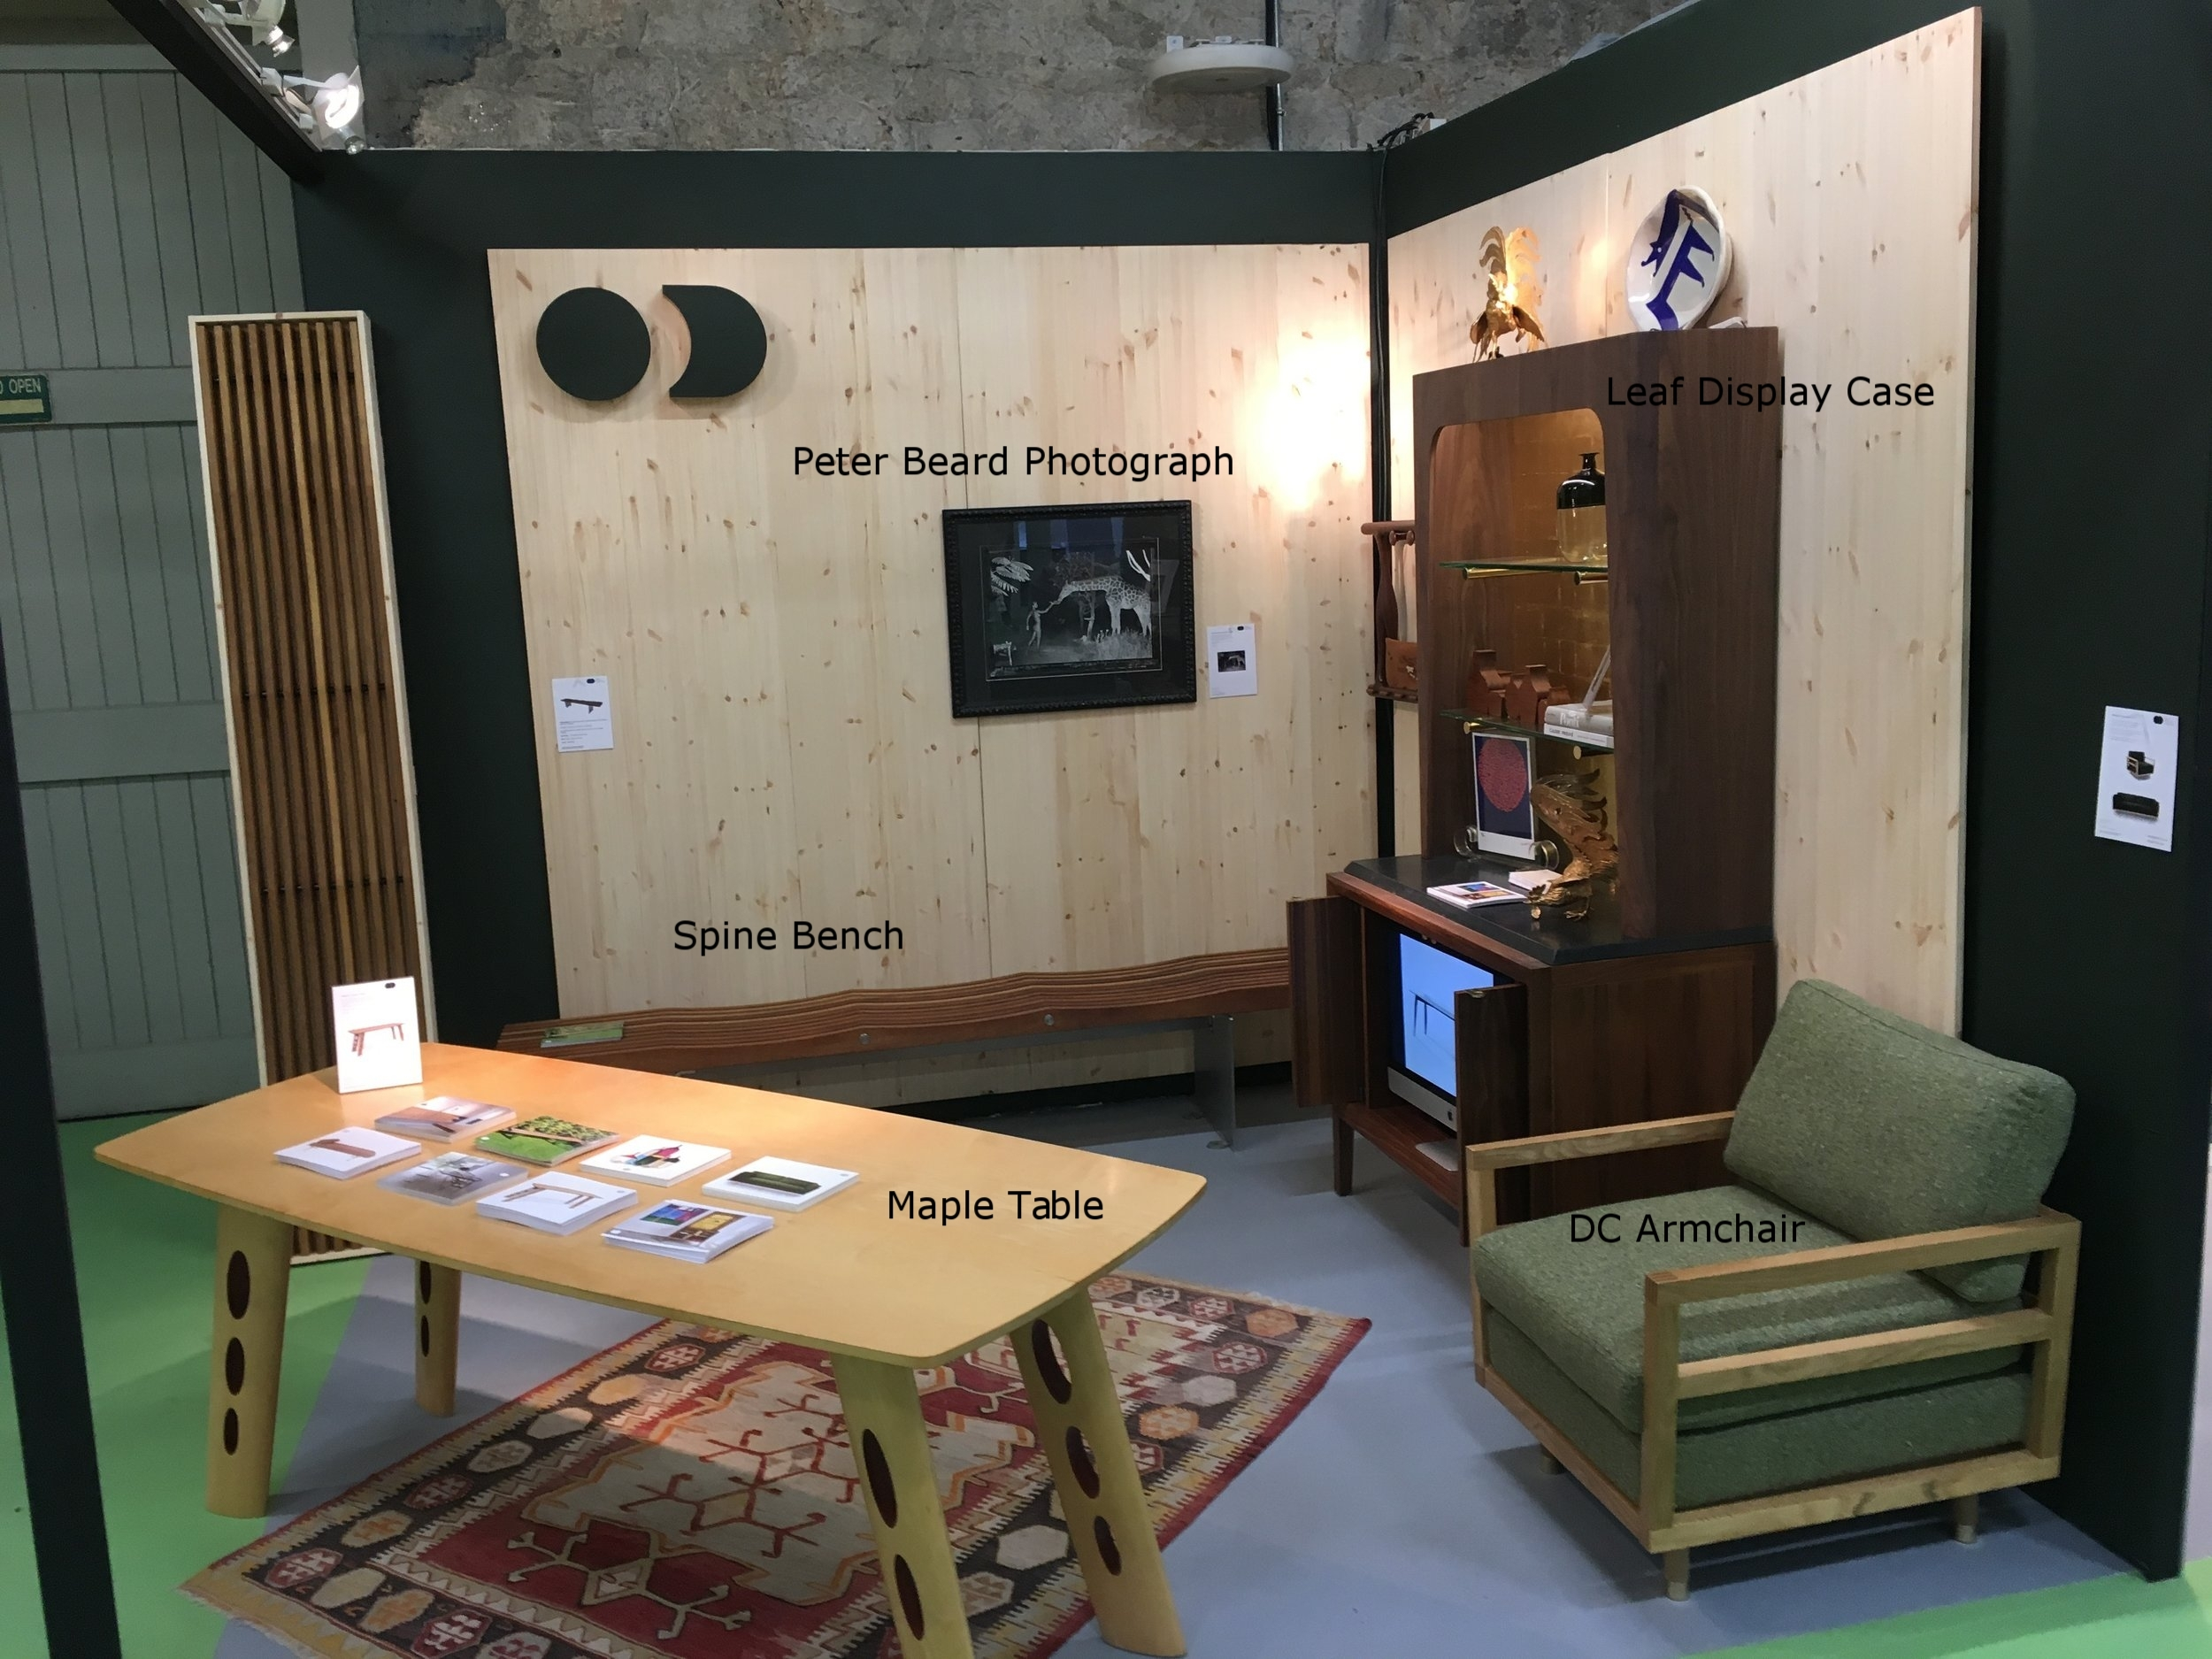 Showing Maple Dining Table (1996), Outdoor Spine Bench (free standing & crated for storage & shipping) and the recent Leaf Display Cabinet at HOUSE 2017, RDS, Ballsbridge Dublin 4. Including mix of antiue rug, Peter Beard photograph, 1960's Danish stool (wall mounted), Patrick Scott print among others.